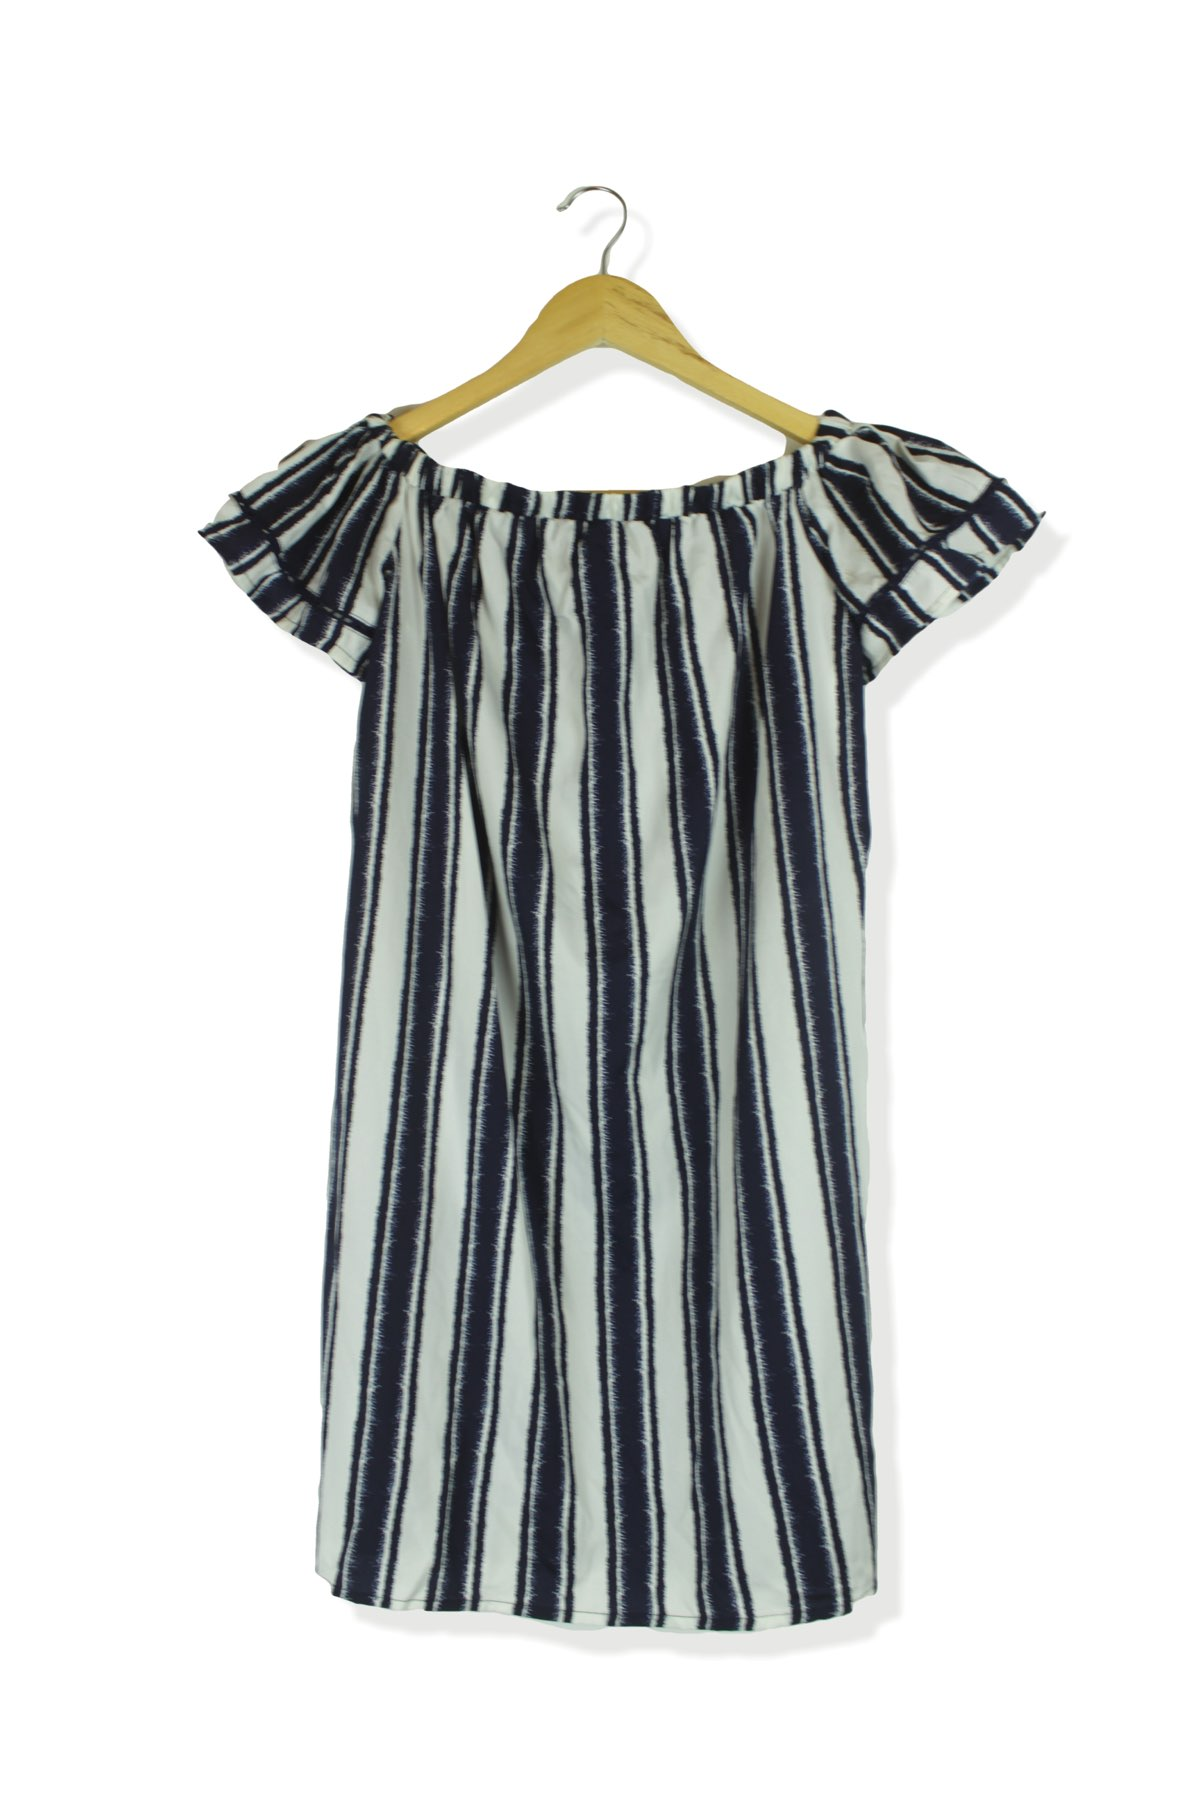 96f2c8bffe8 Primark • Size 10 • Women, Dresses, Second-Hand Clothing • O a f o ...